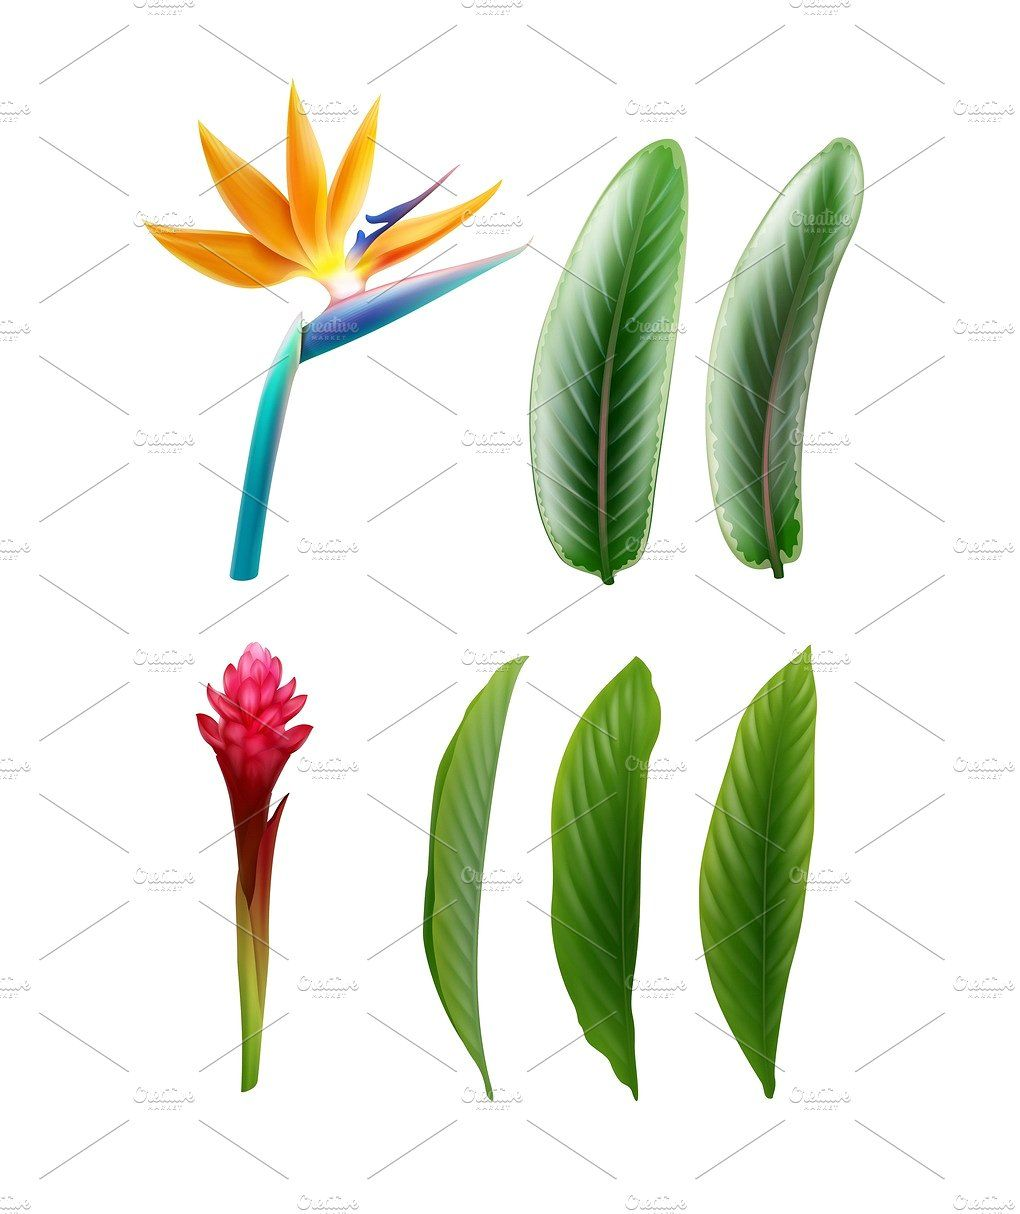 Bird Of Paradise And Red Ginger Birds Of Paradise Birds Of Paradise Flower Tropical Garden